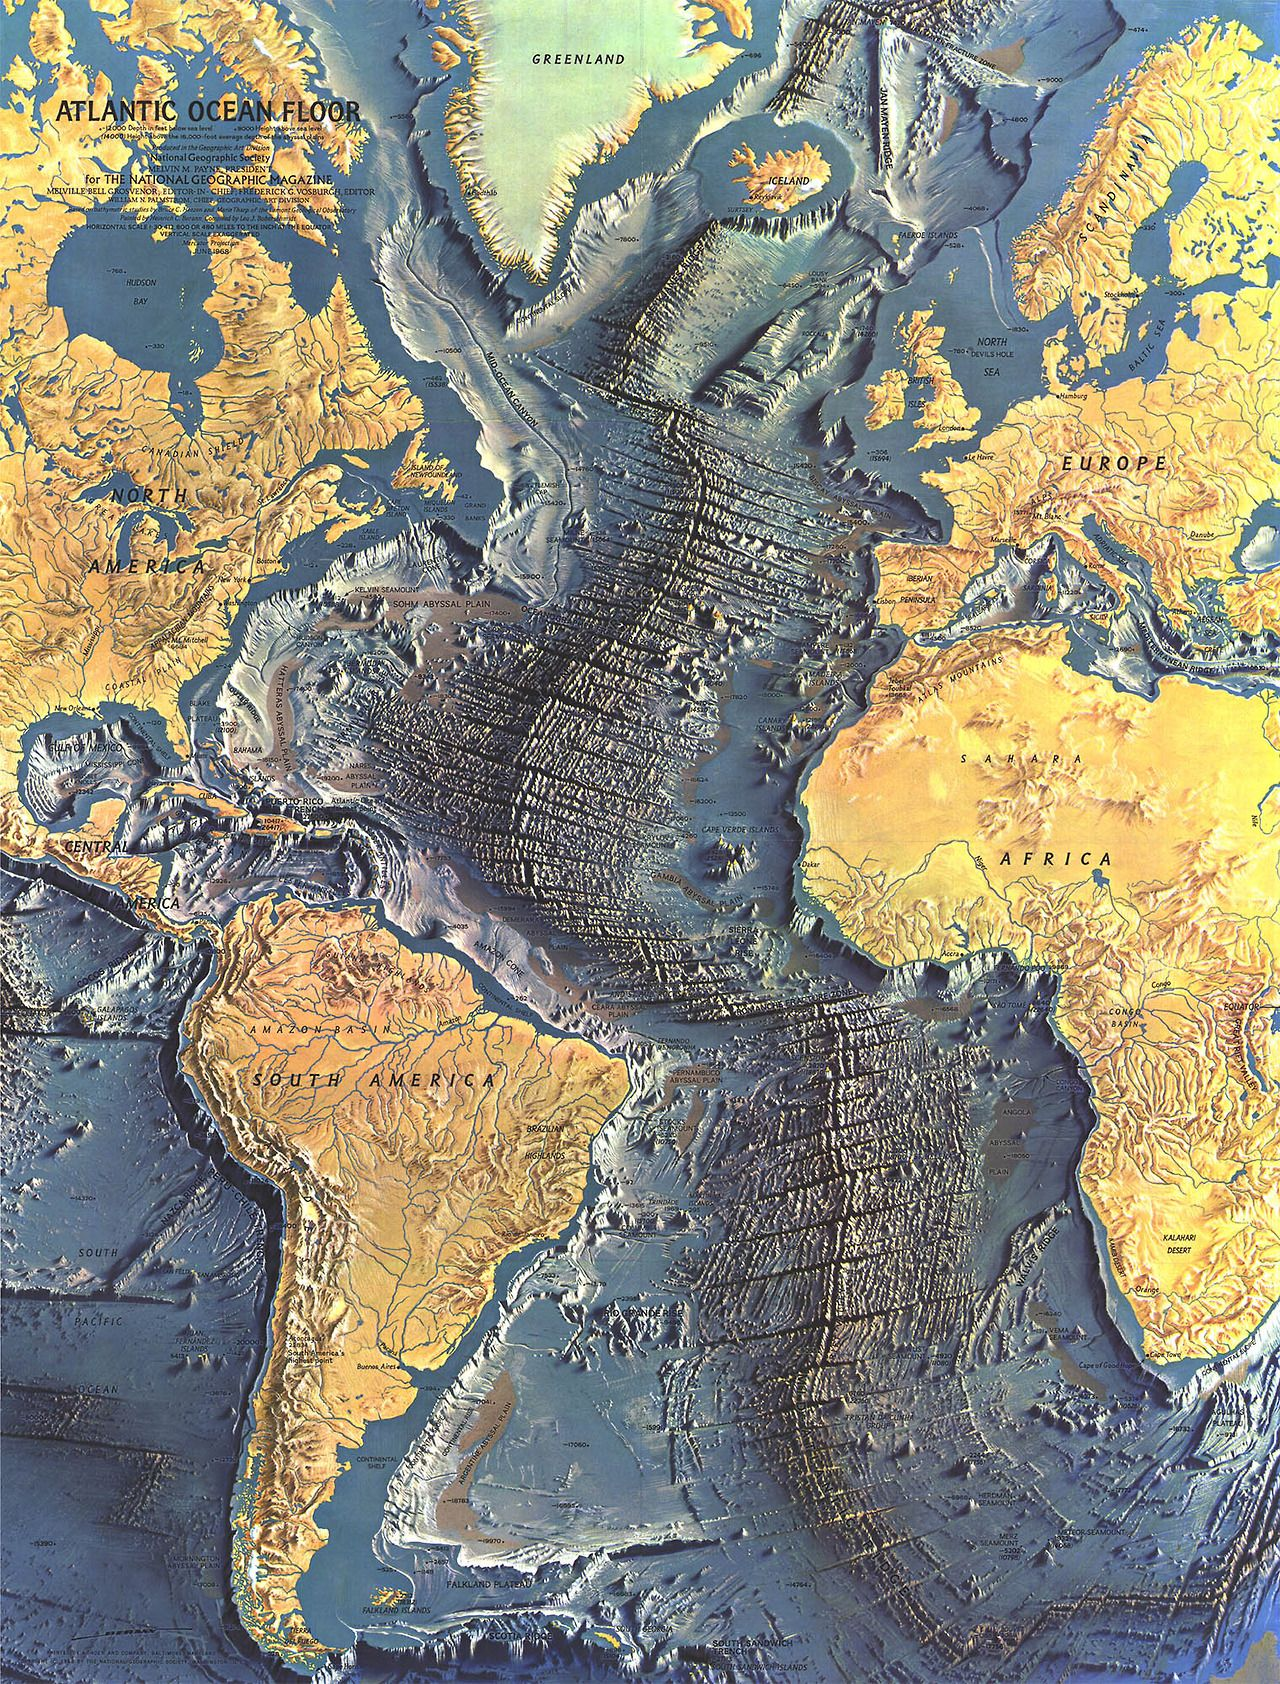 Beautiful Topography Map Of The Atlantic Sea Floor The Mid - Earth topographic map